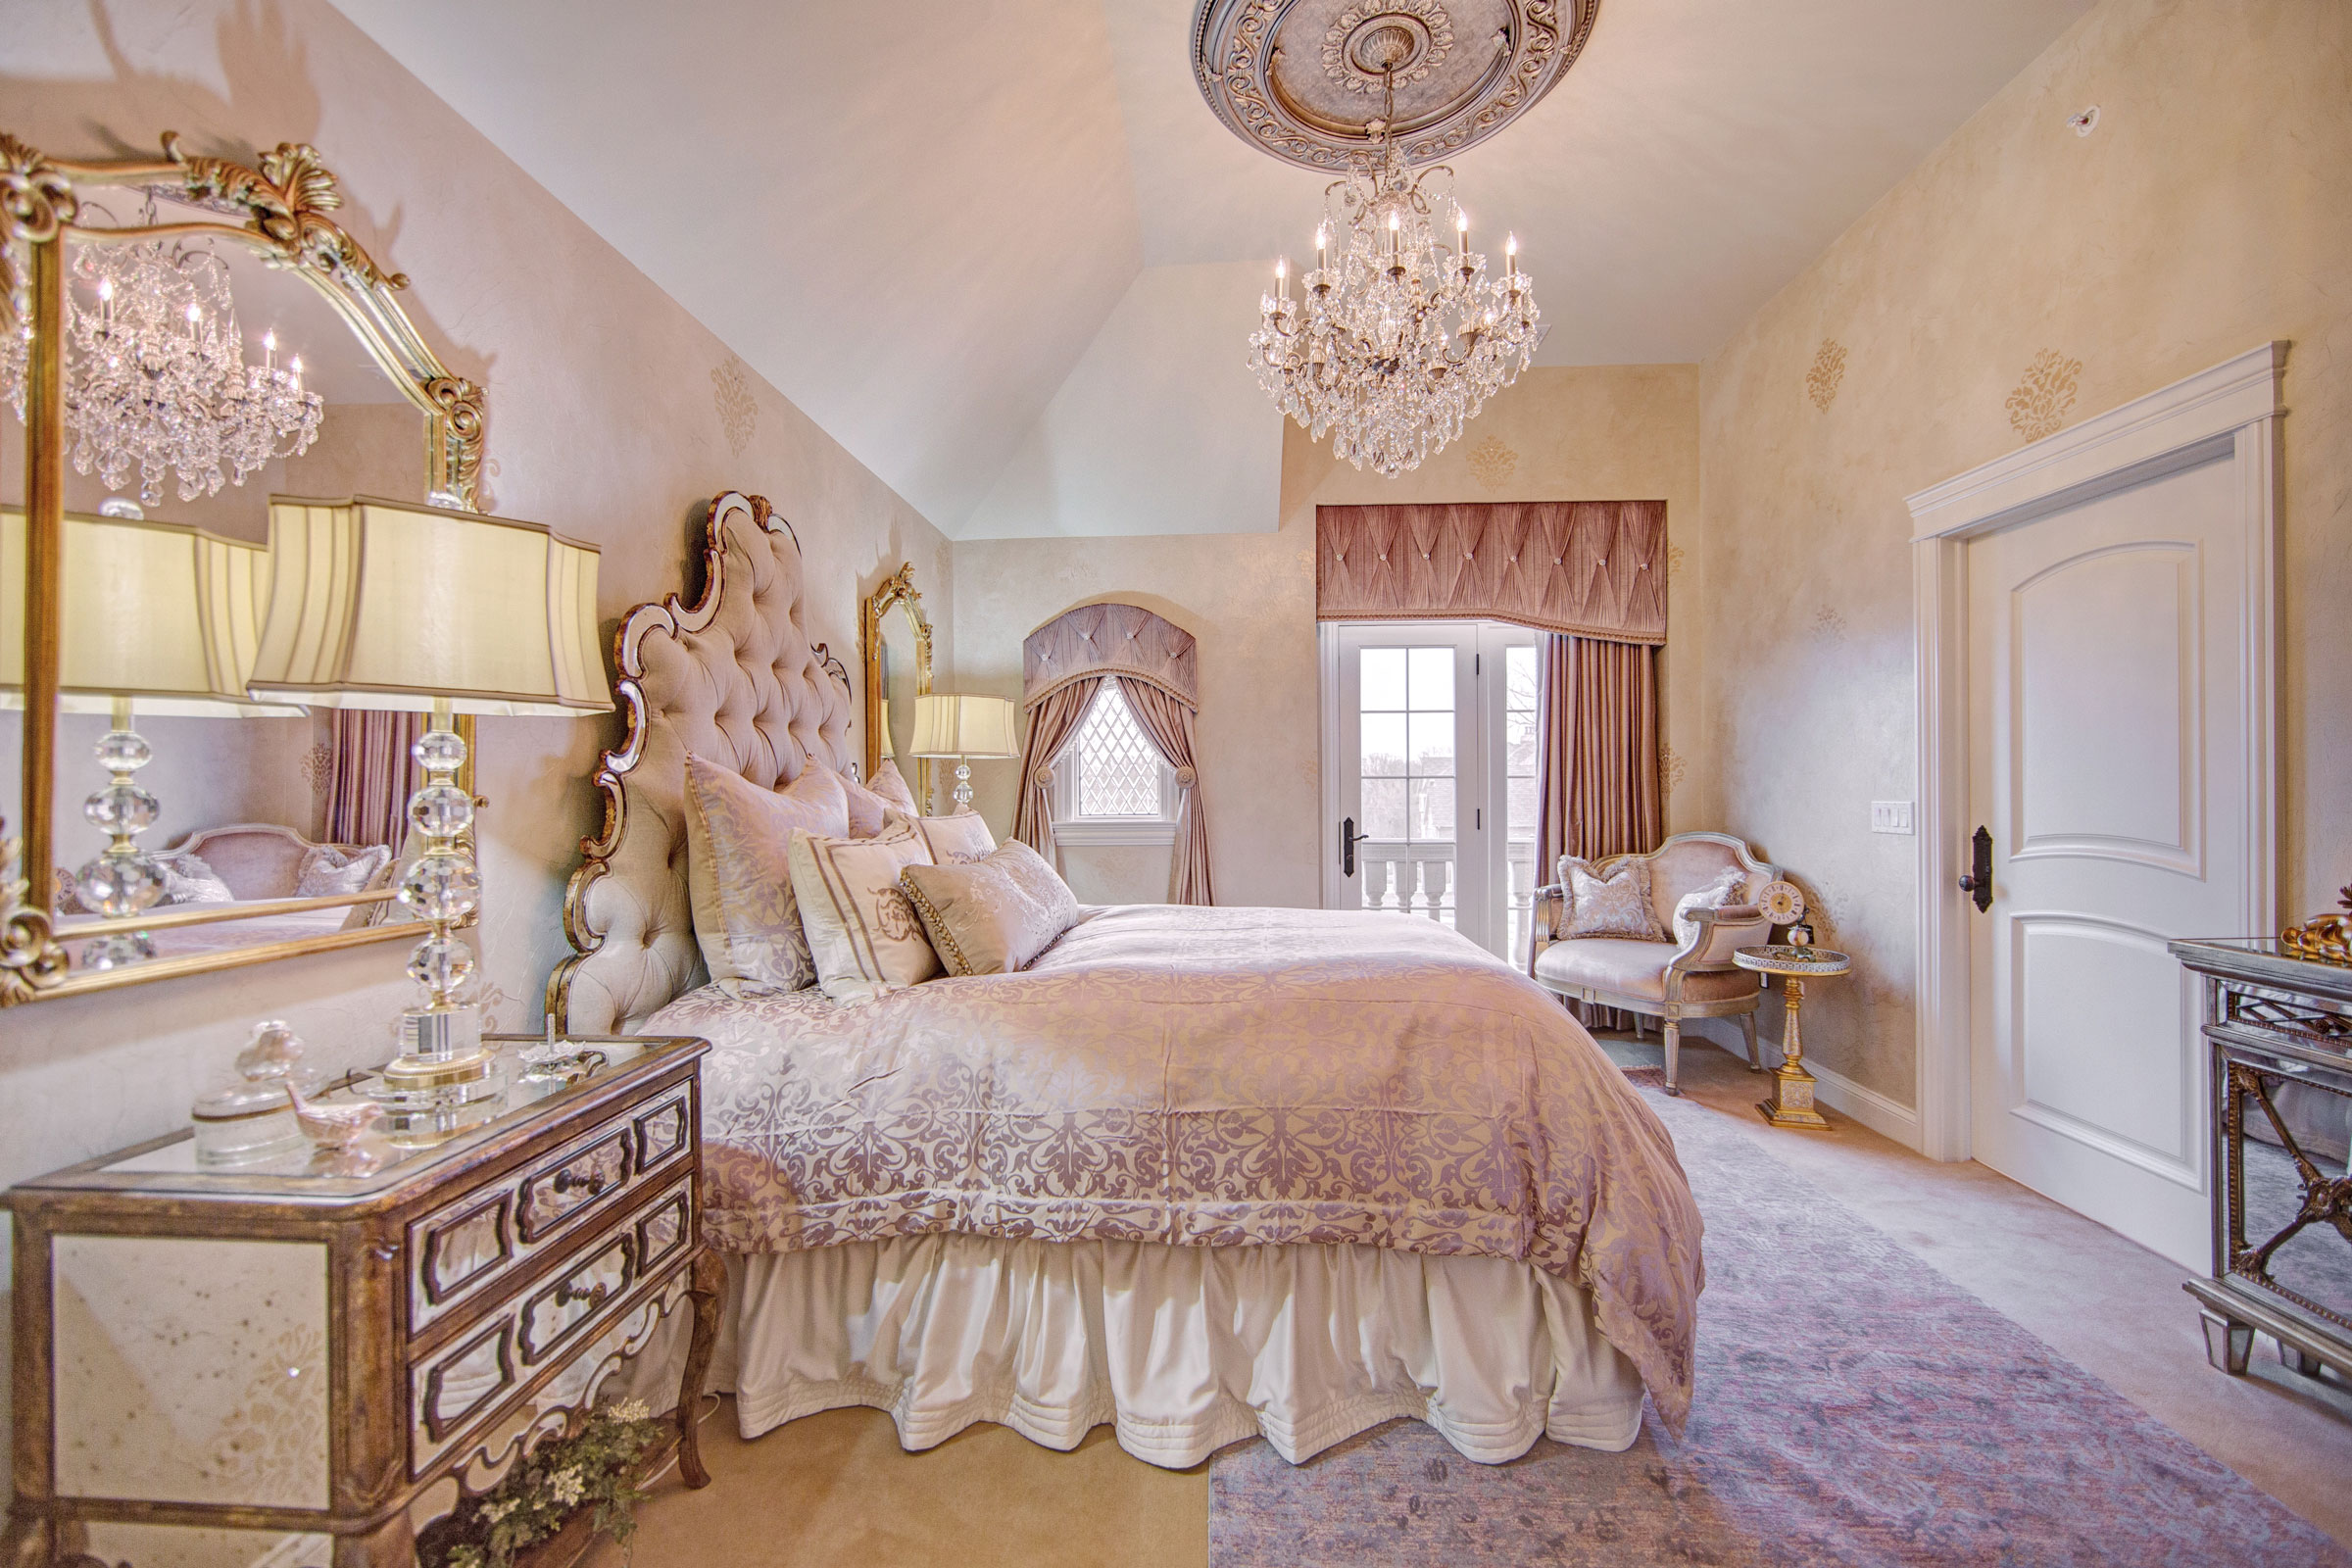 Luxury Bedroom Design Projects Linly Designs